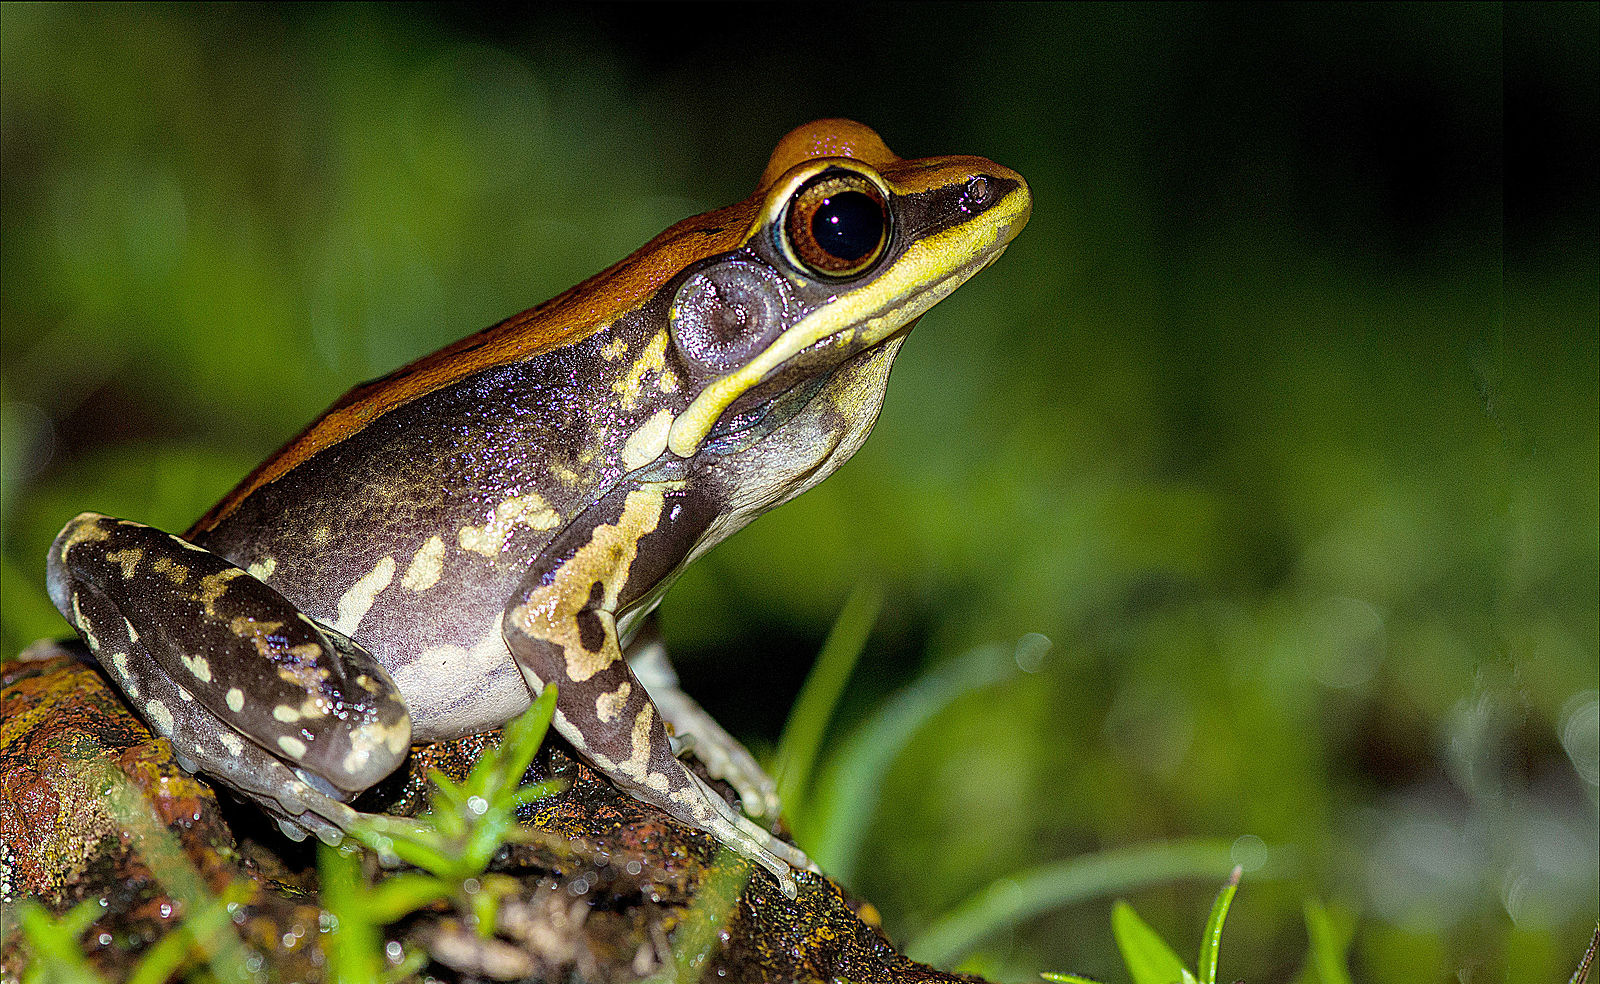 An odd discovery involving frog skin could end flu season ...